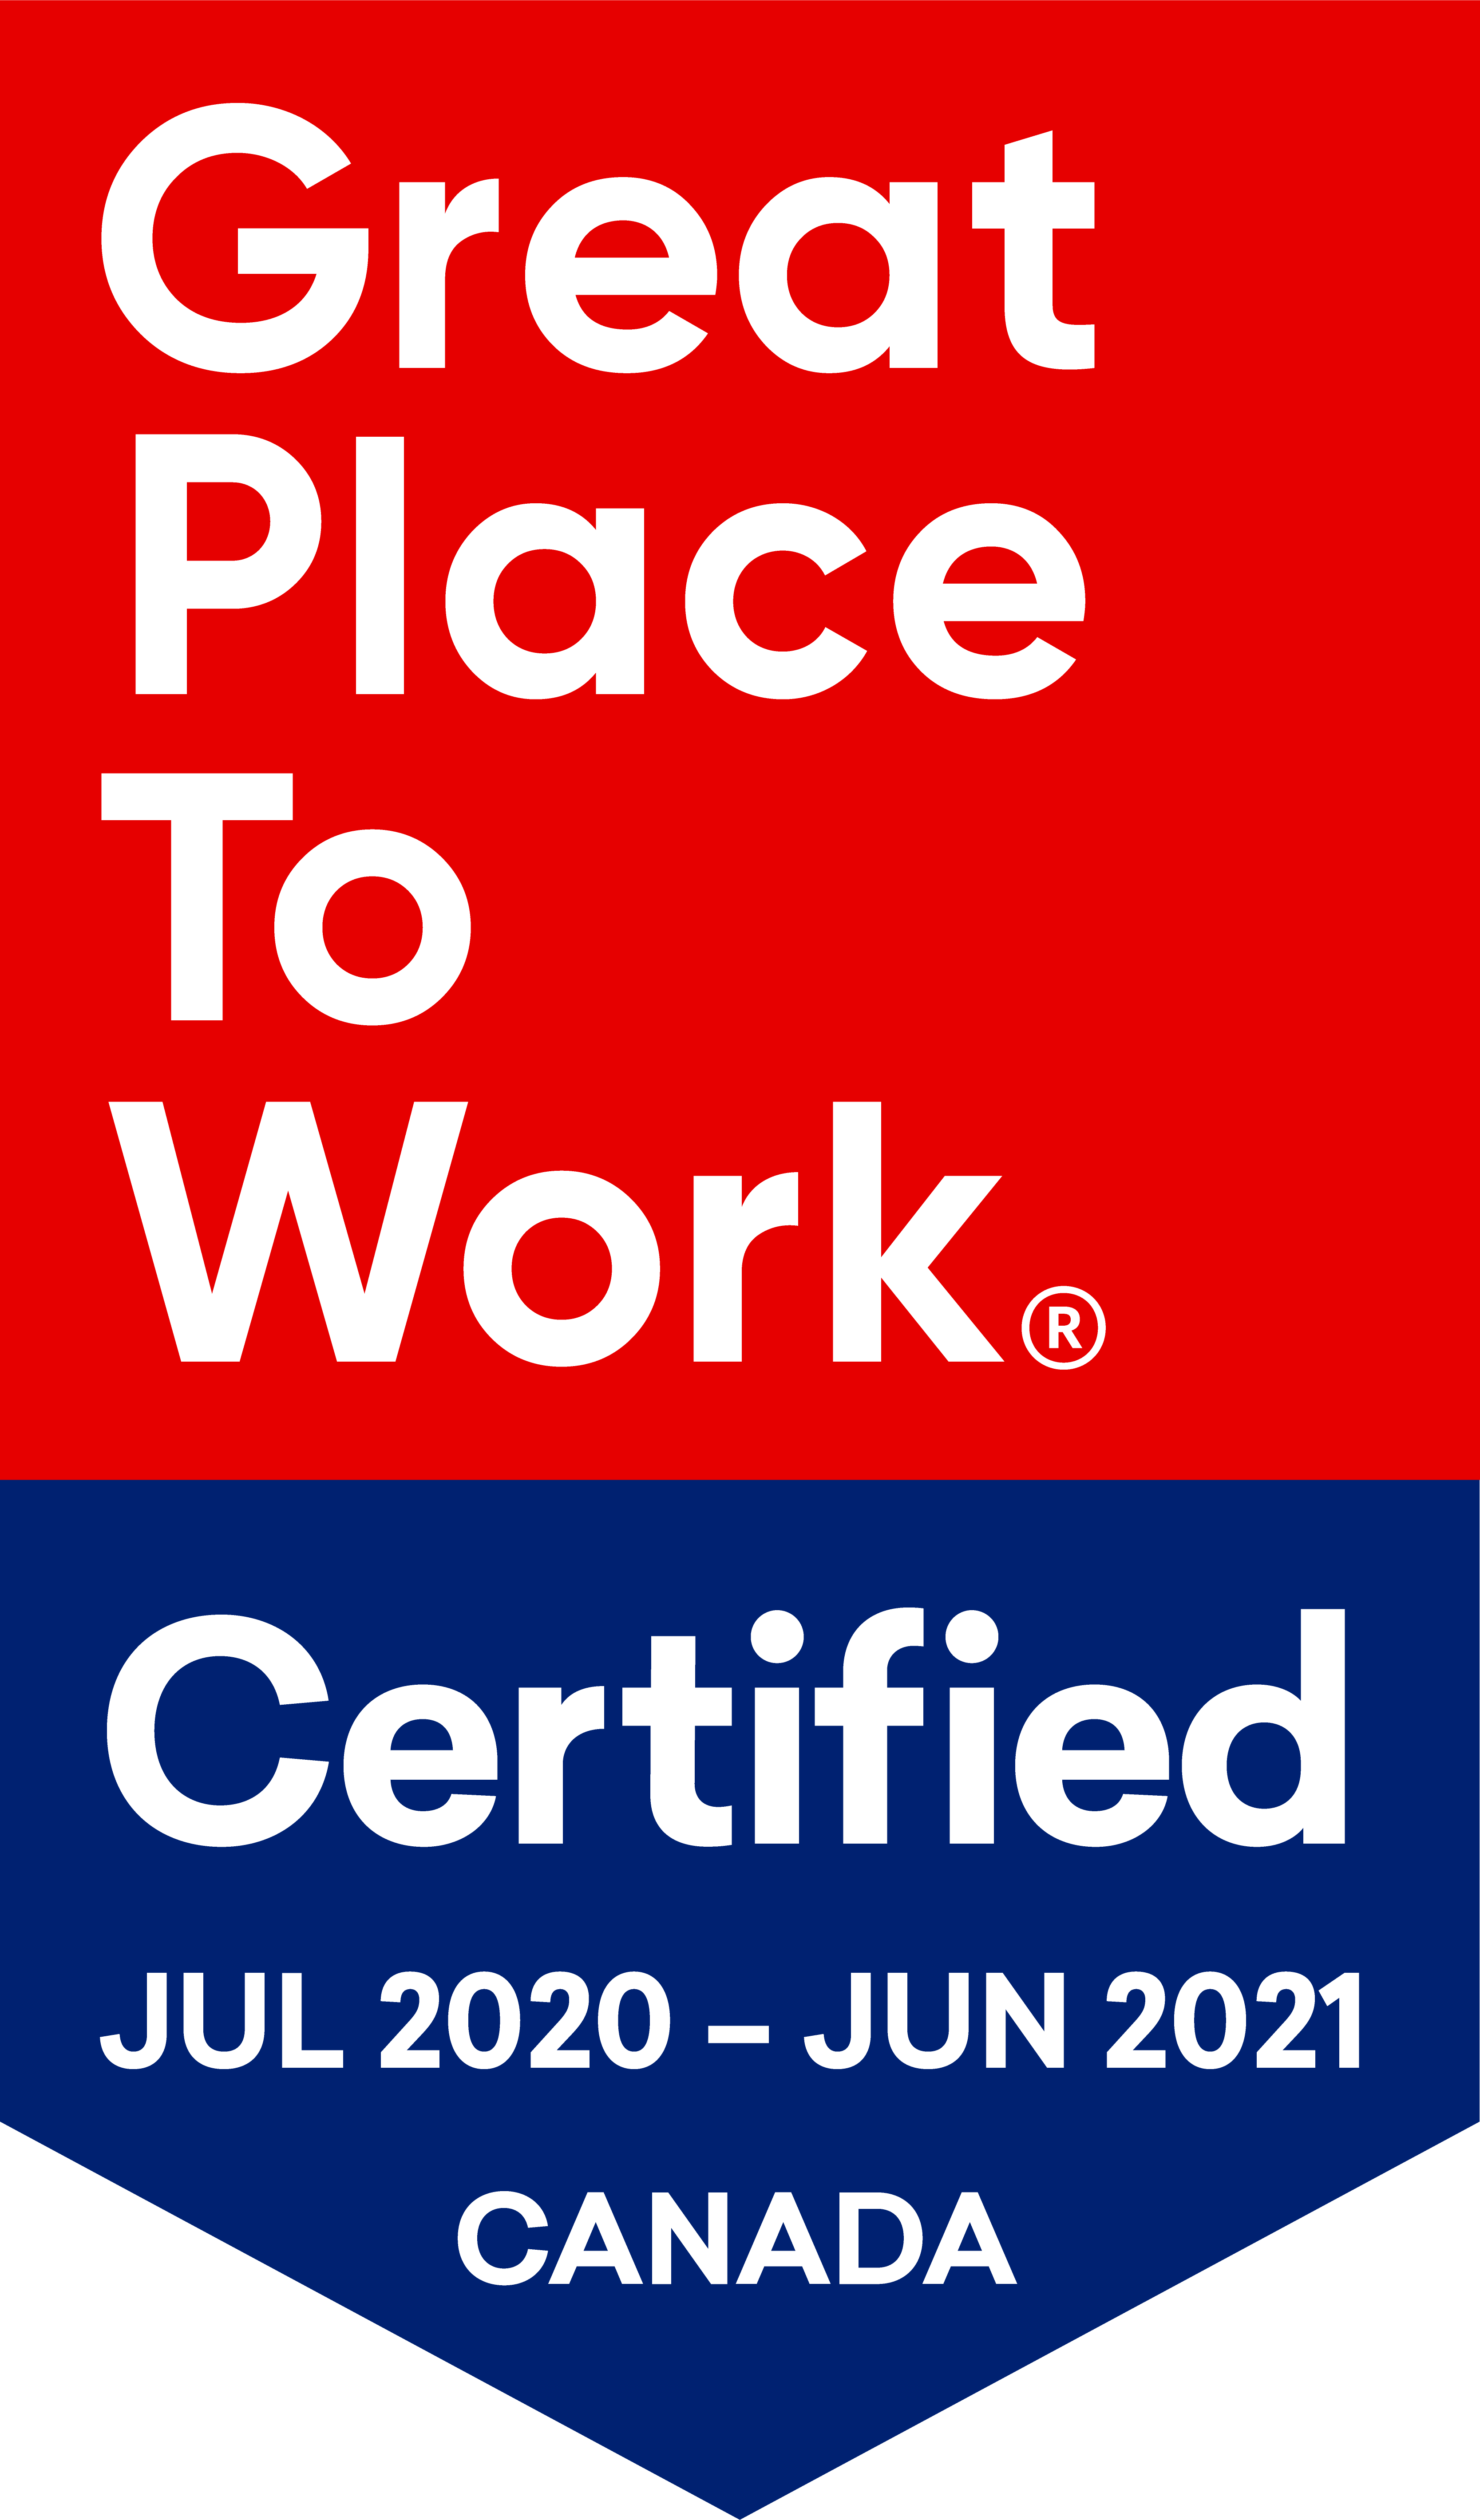 Great Place to Work Certified for PostBeyond